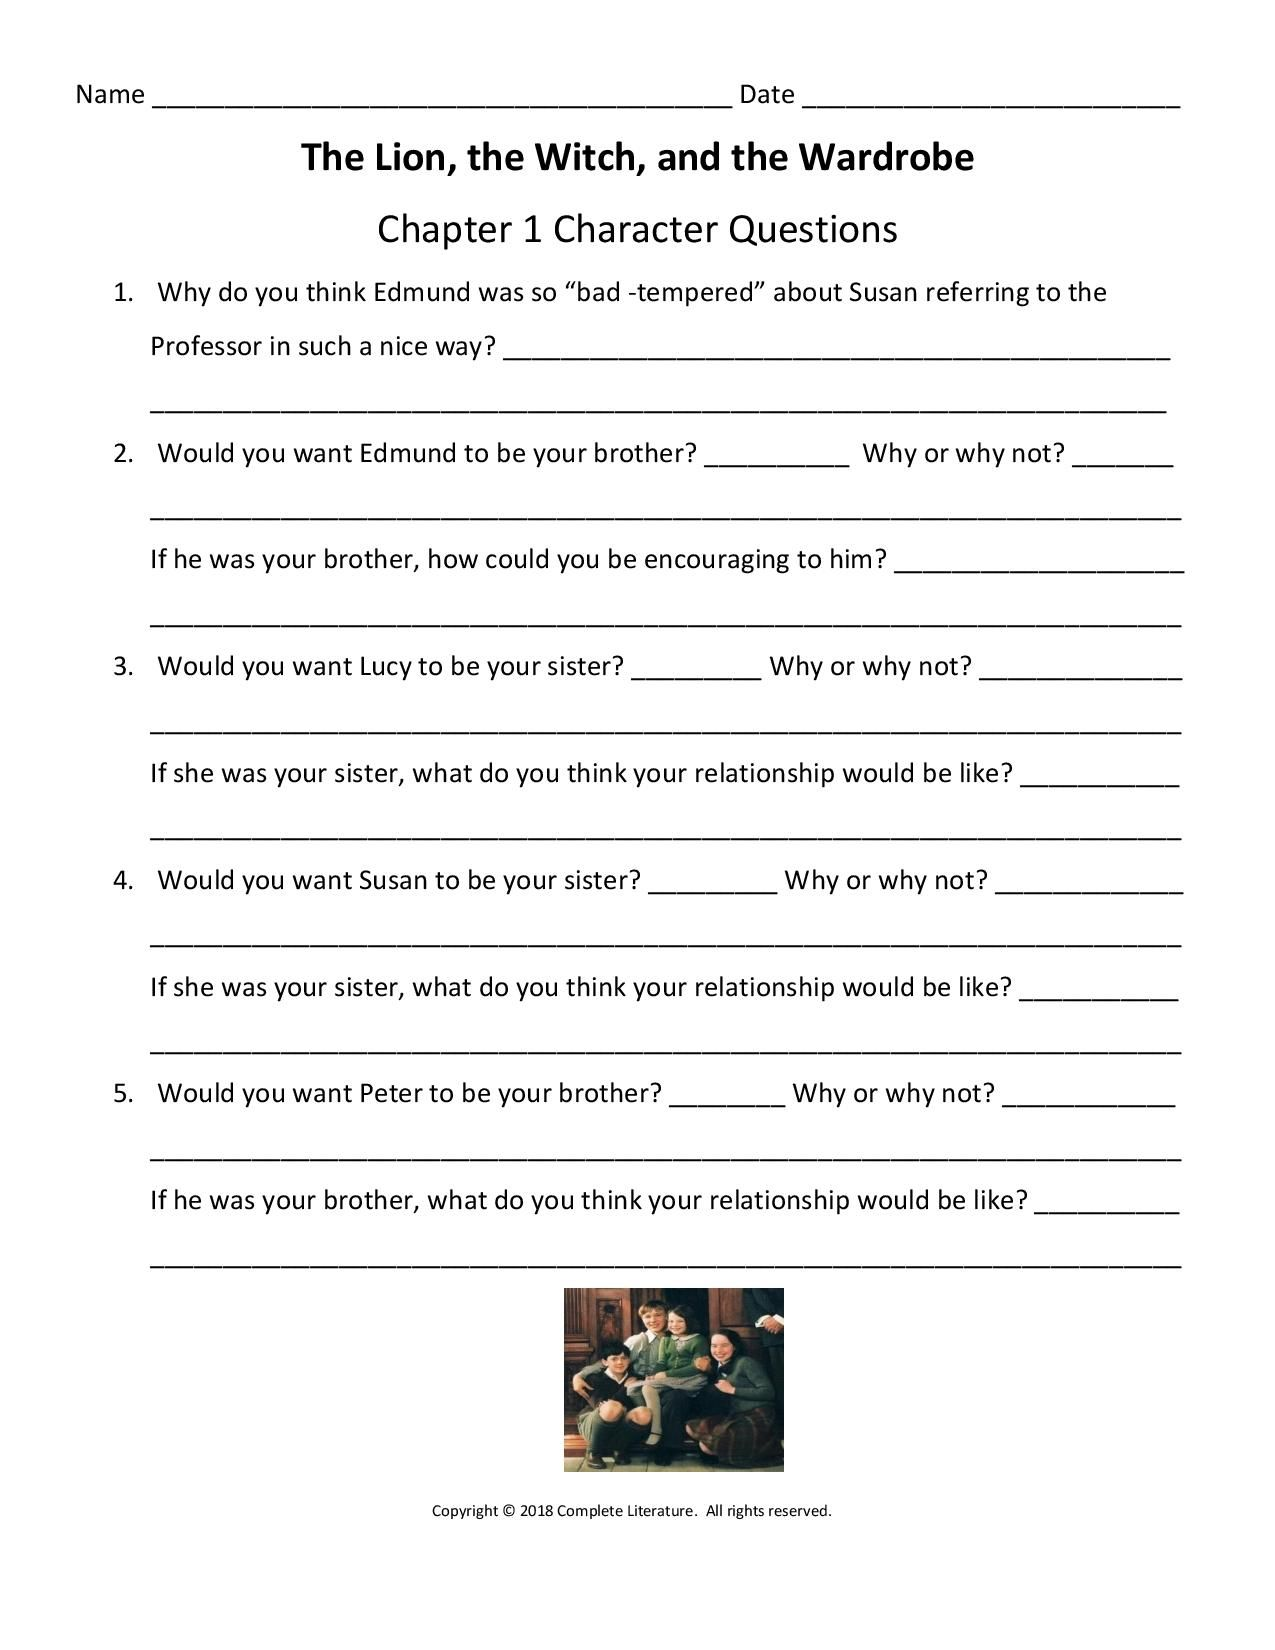 This Worksheet Is A Great Way For Your Students To